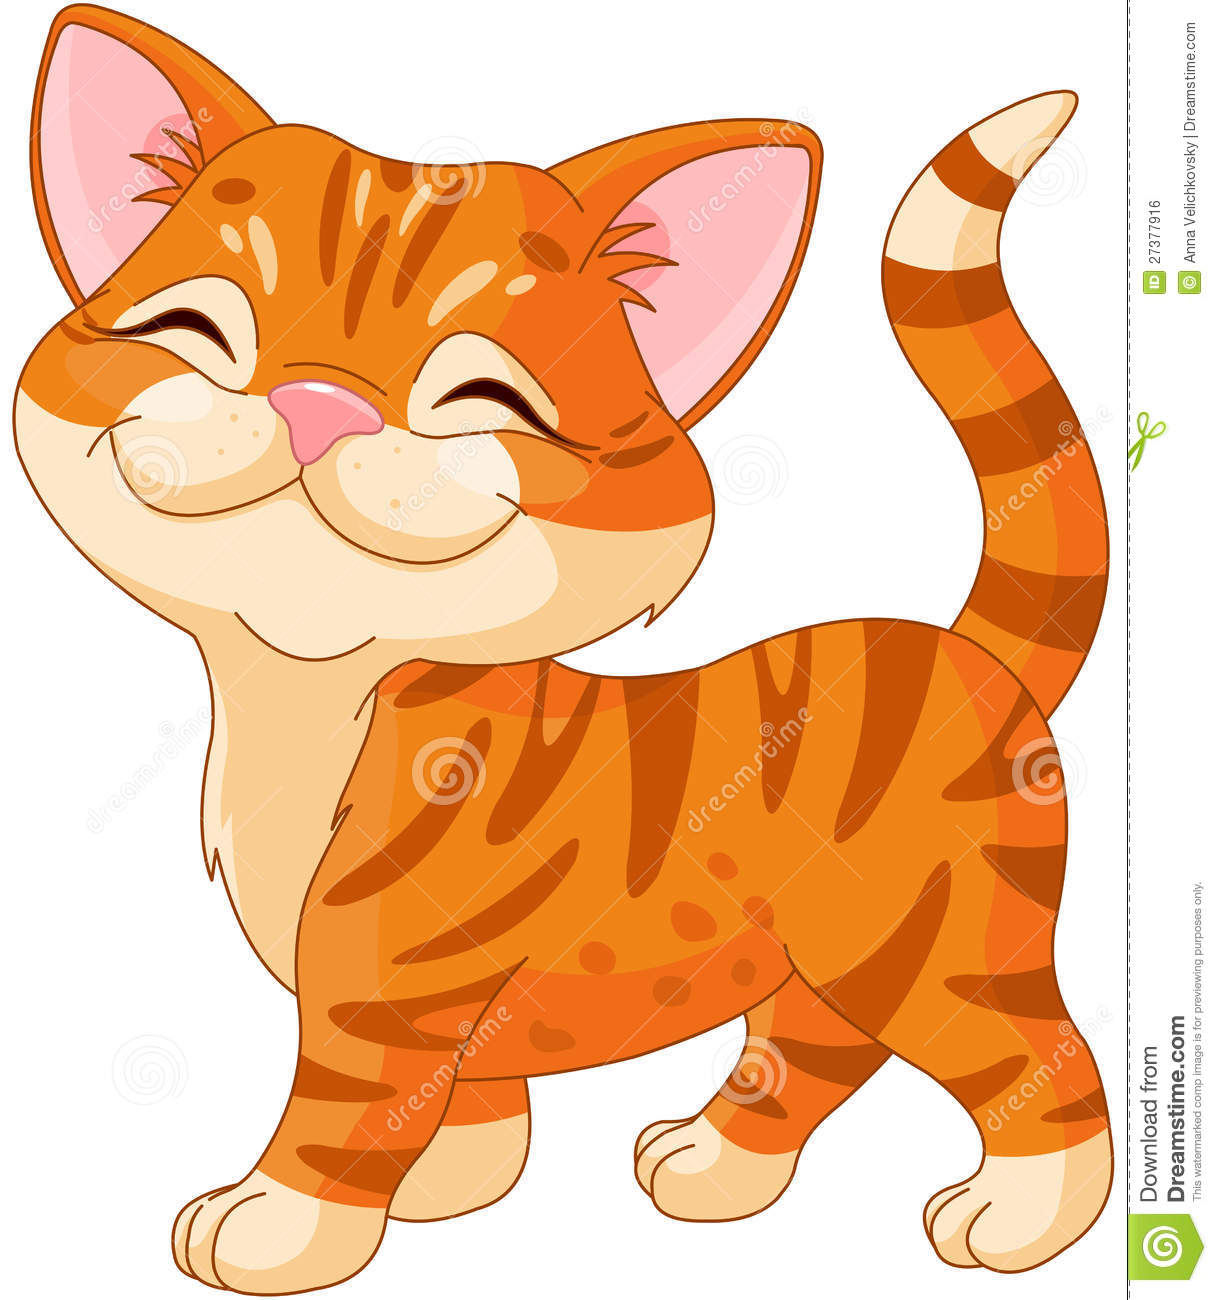 Cute kitten clipart - .